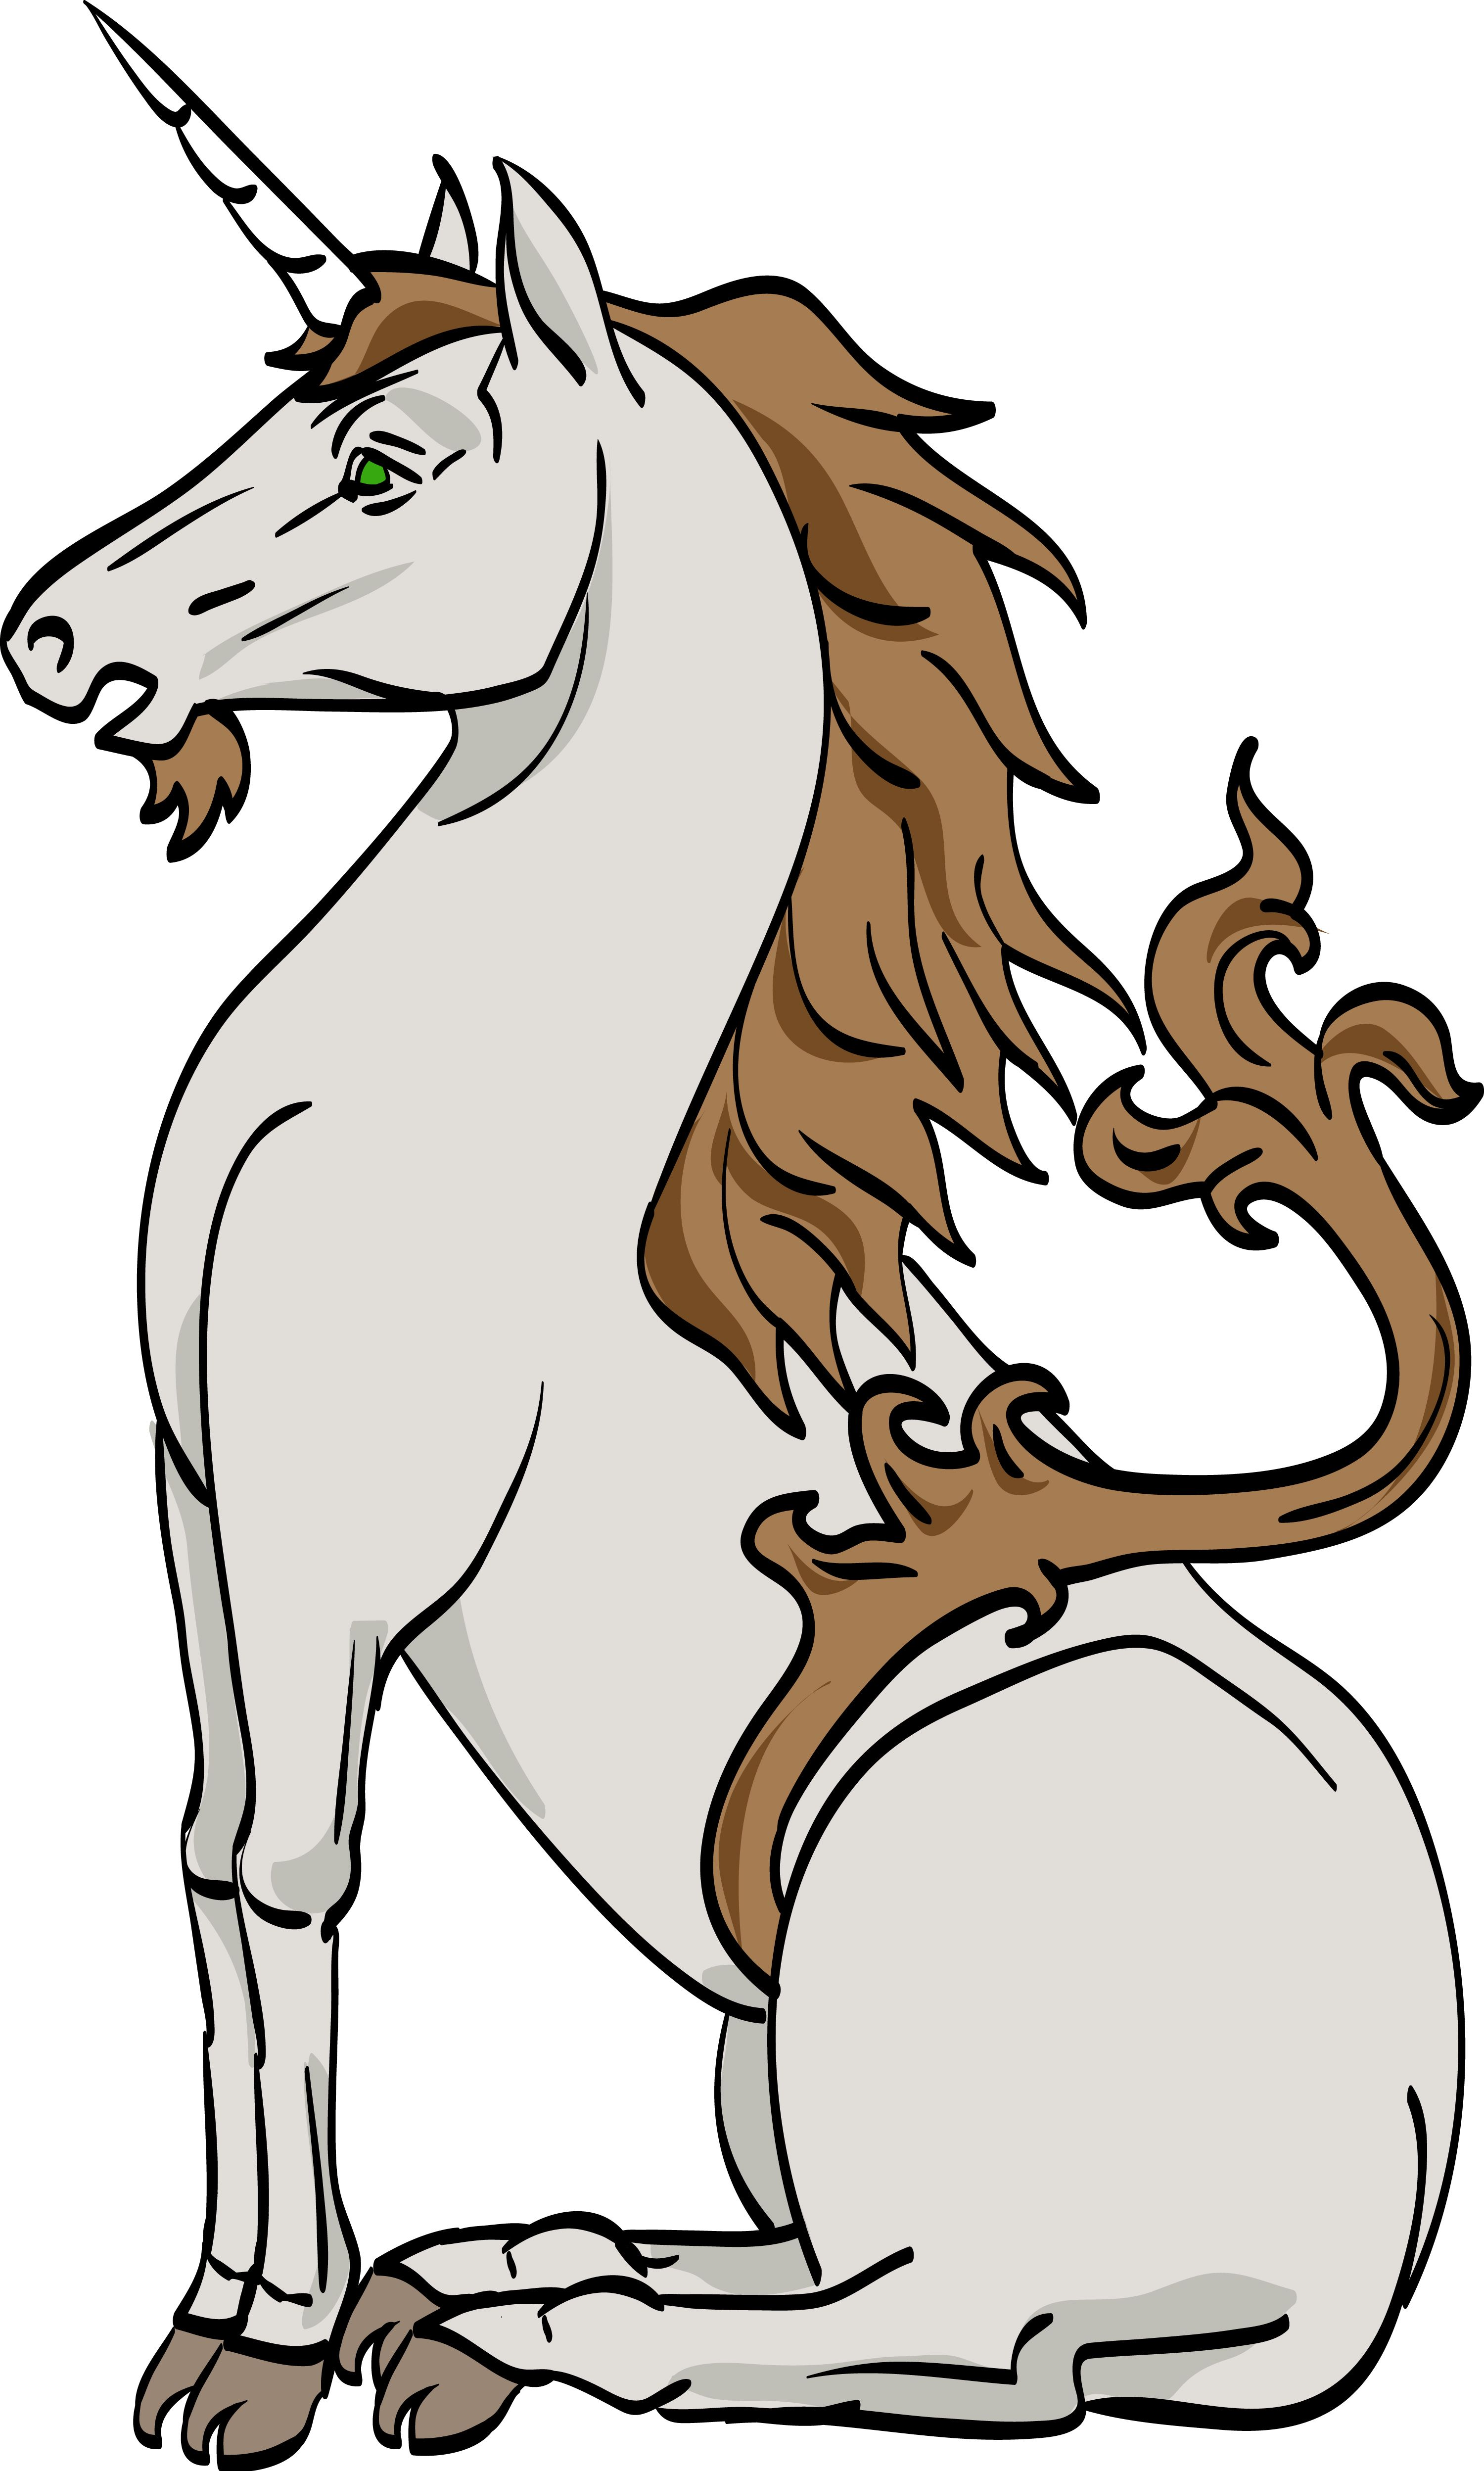 Unicorn: the symbol and its meaning. Unicorn in heraldry